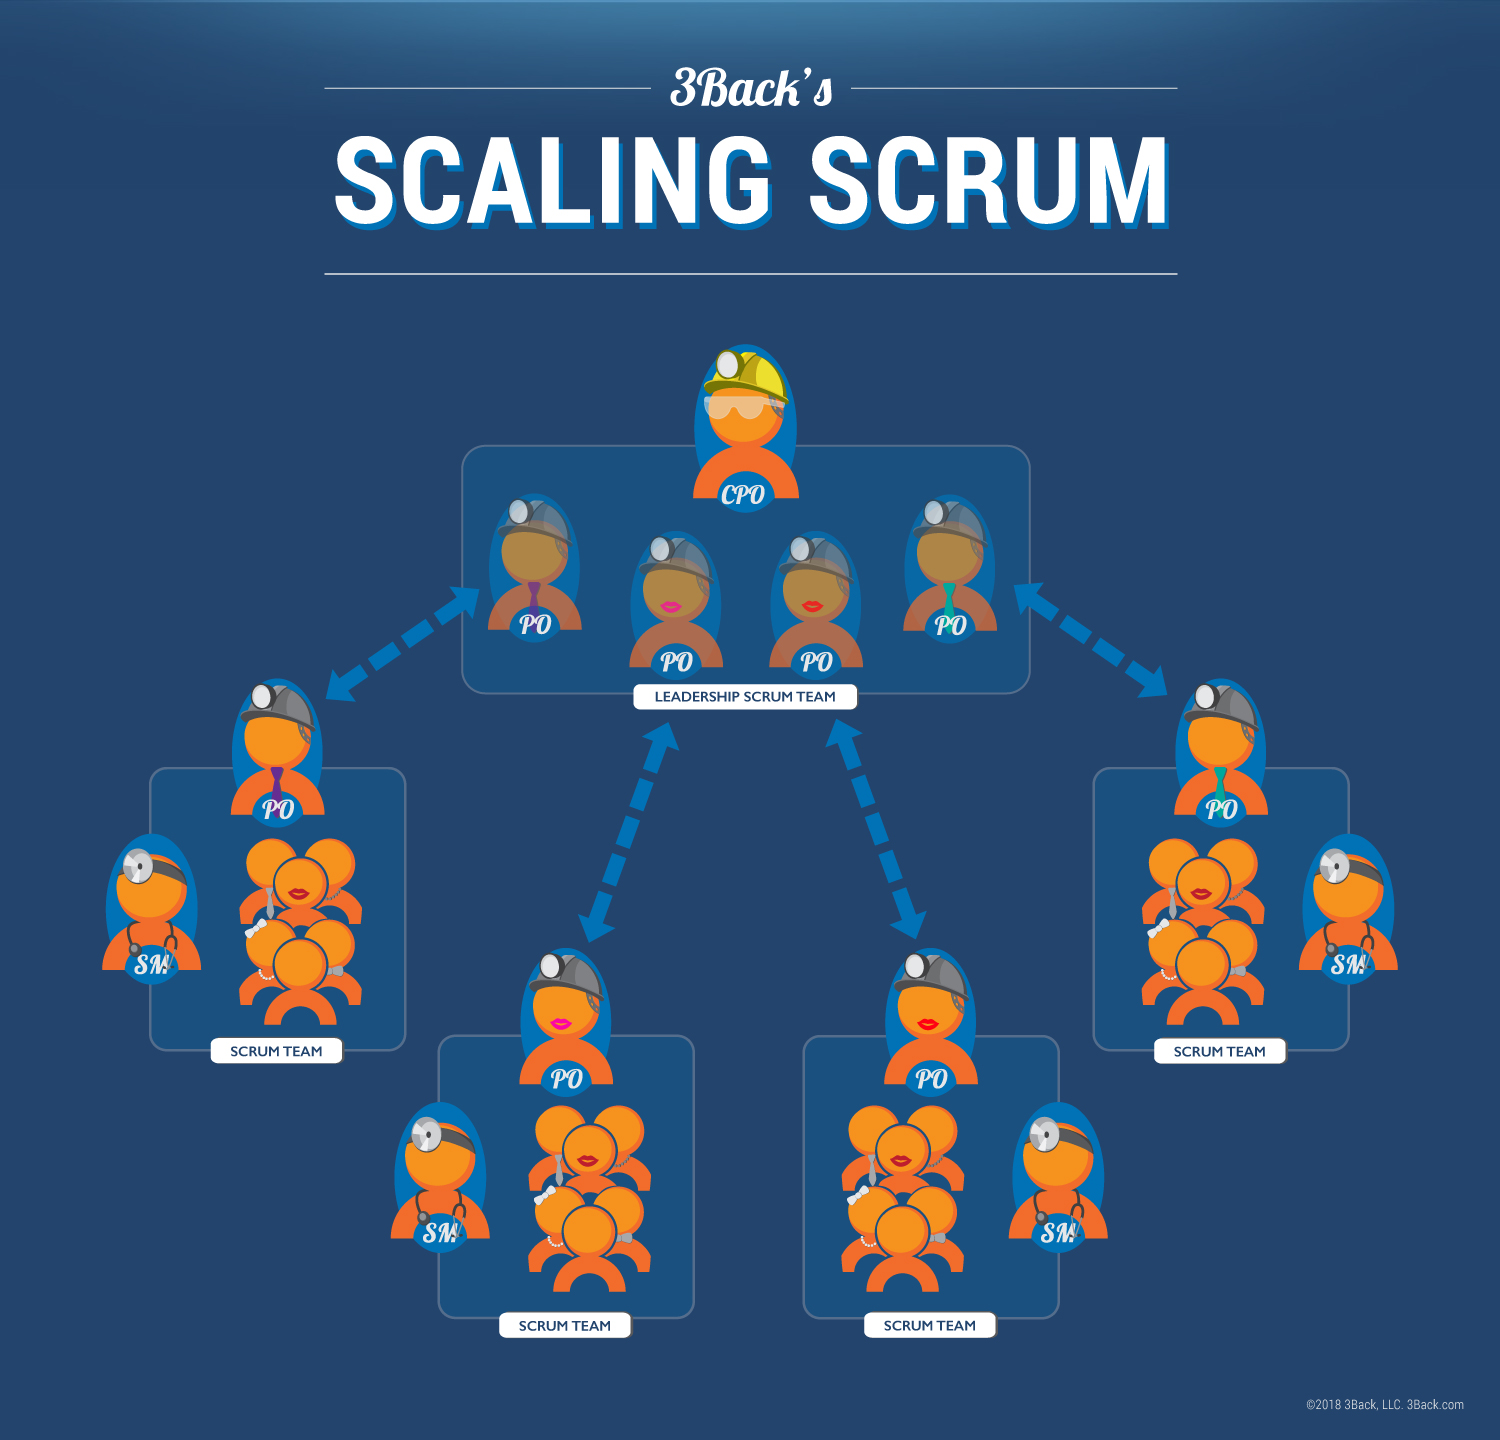 How To Do Large Scale Scrum [Infographic] - 3Back